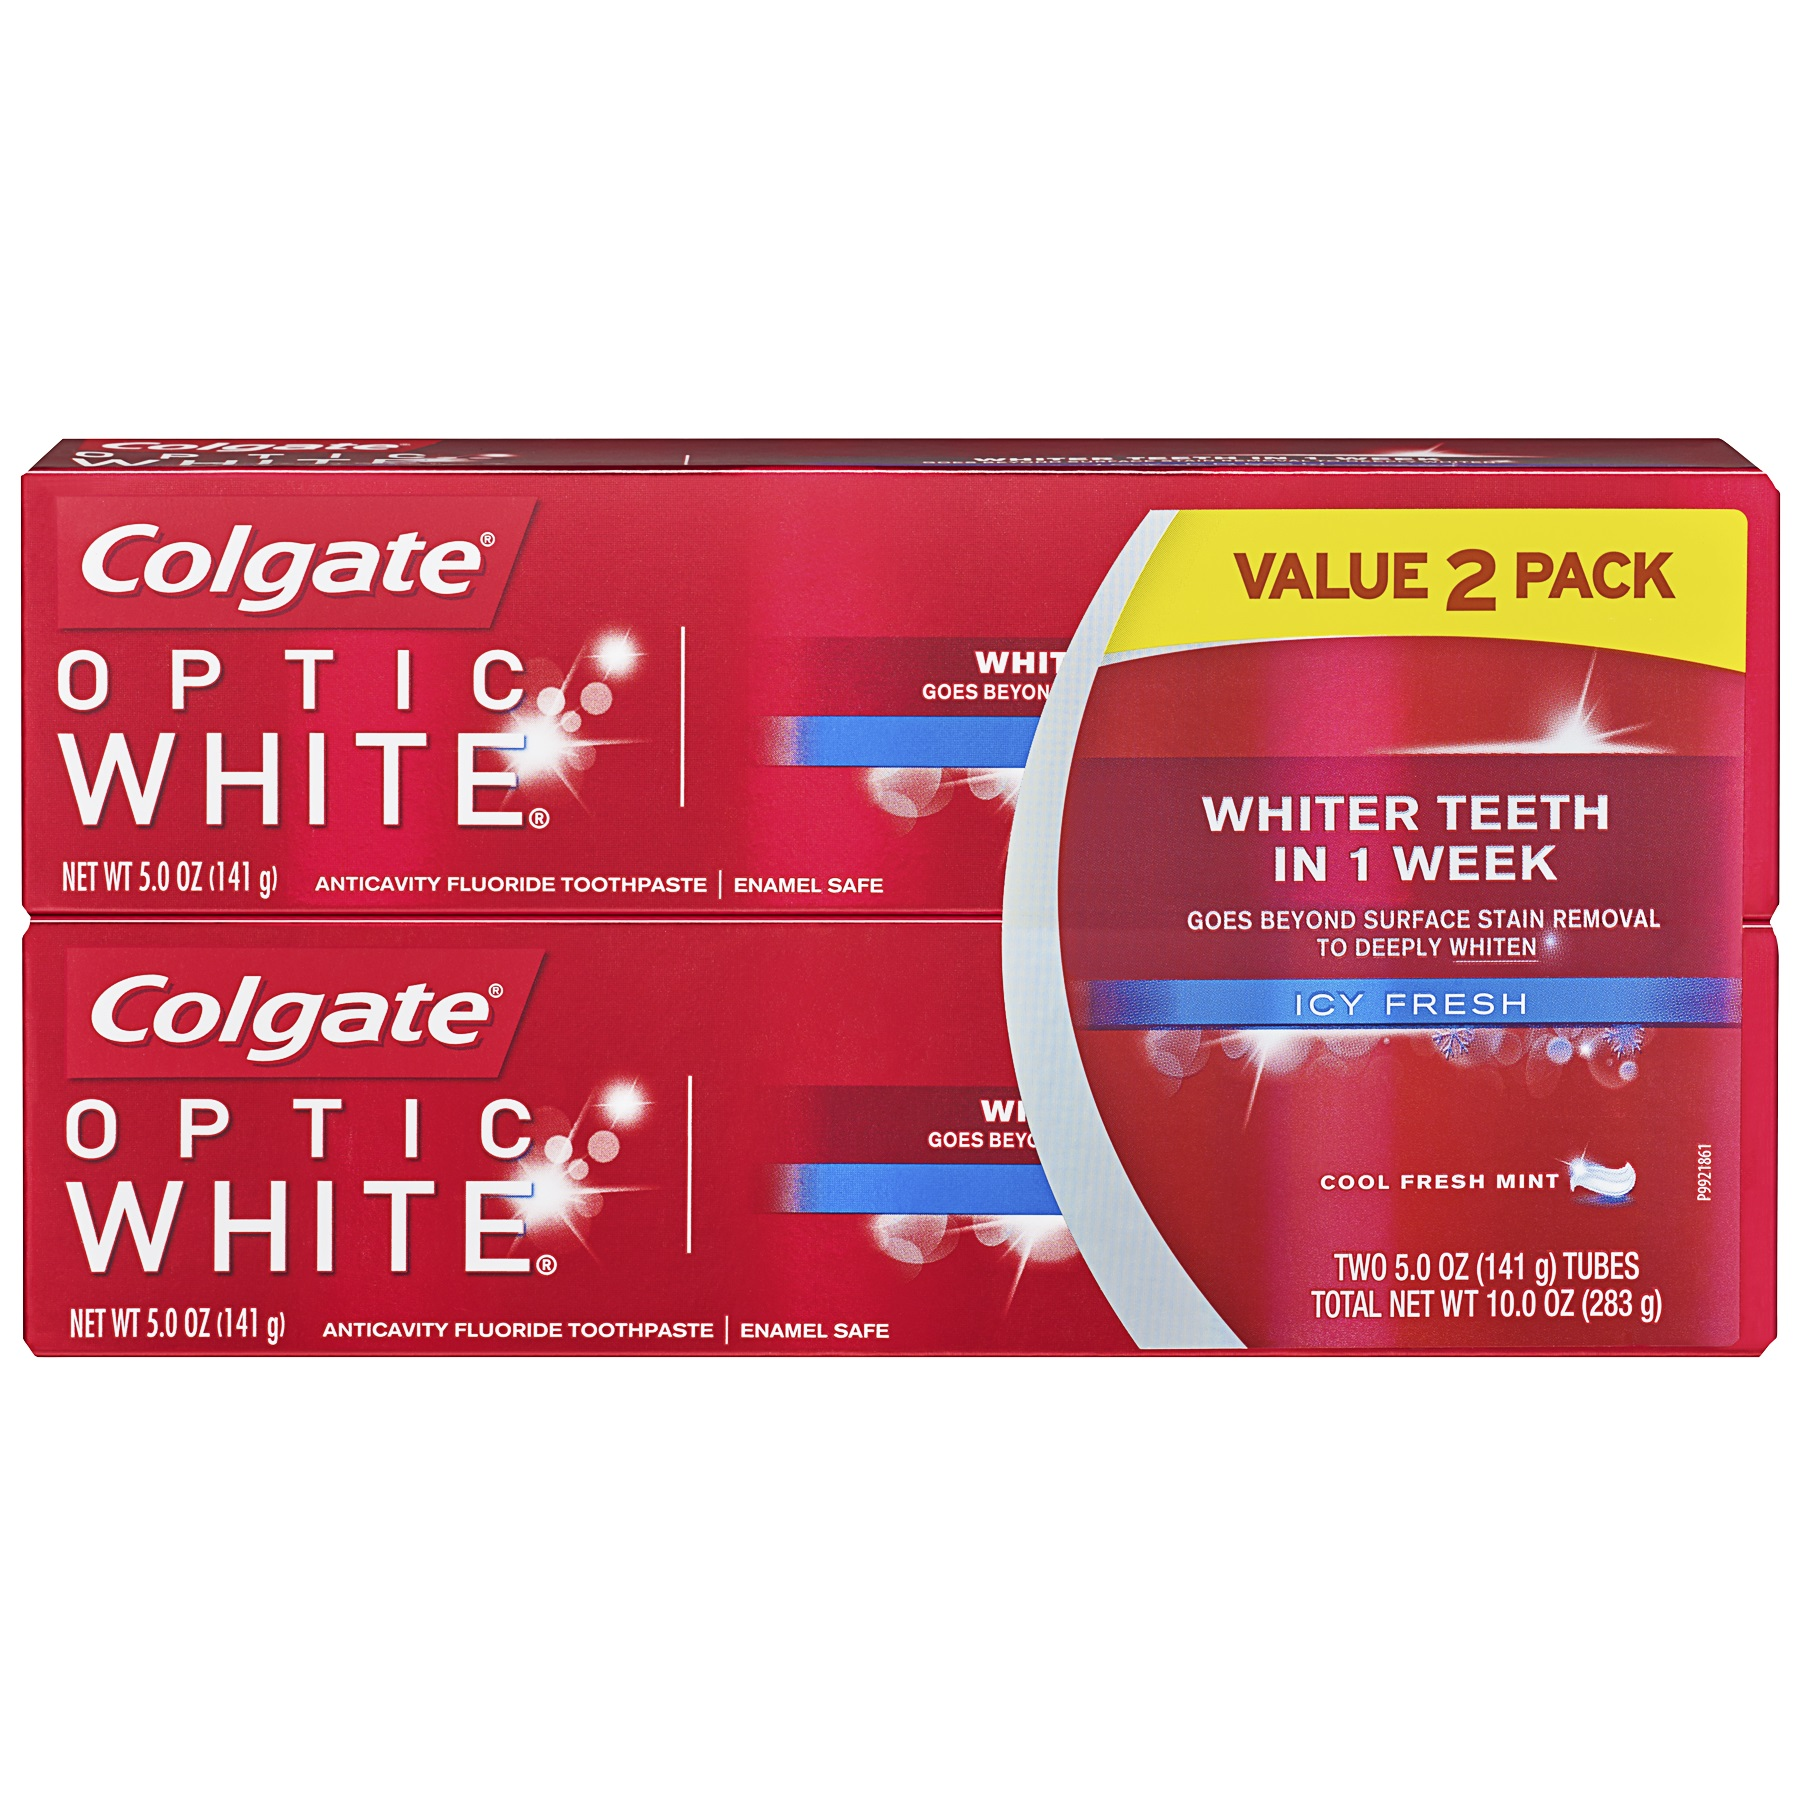 Colgate Optic White Icy Fresh Toothpaste, 5.0 Ounce (pack of 2)